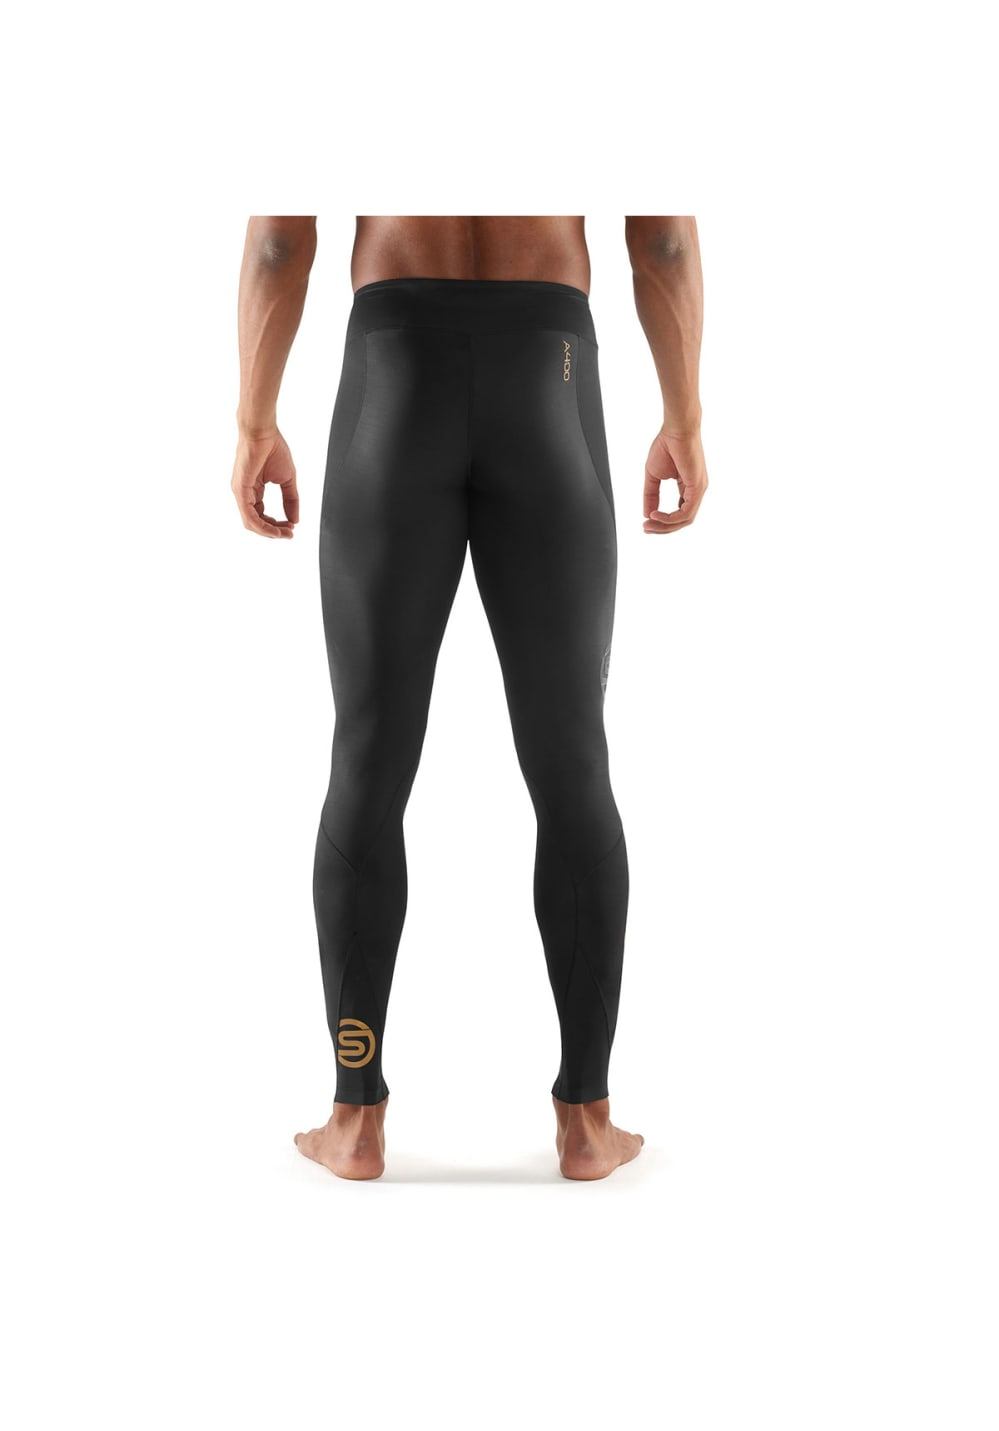 478c3cdce461c Skins A400 Long Tights - Running trousers for Men - Black | 21RUN